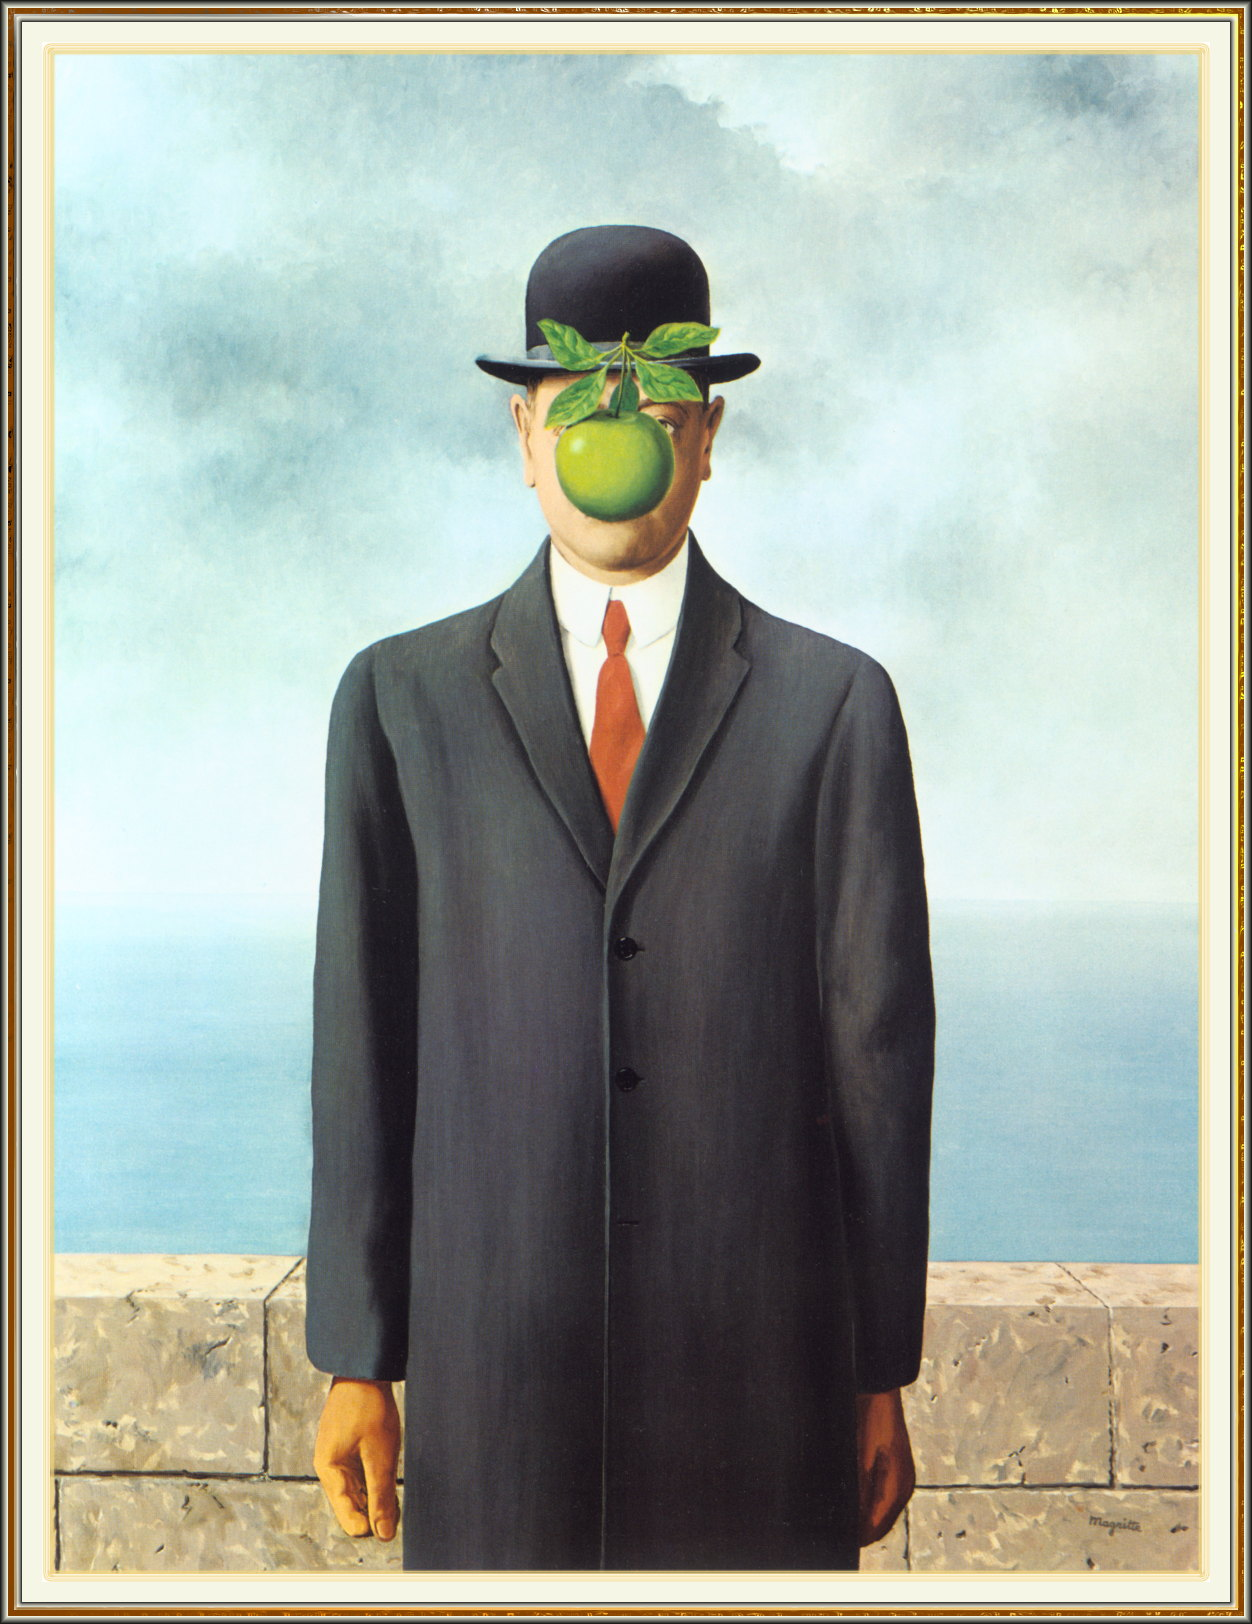 Rene Magritte - Son of Man